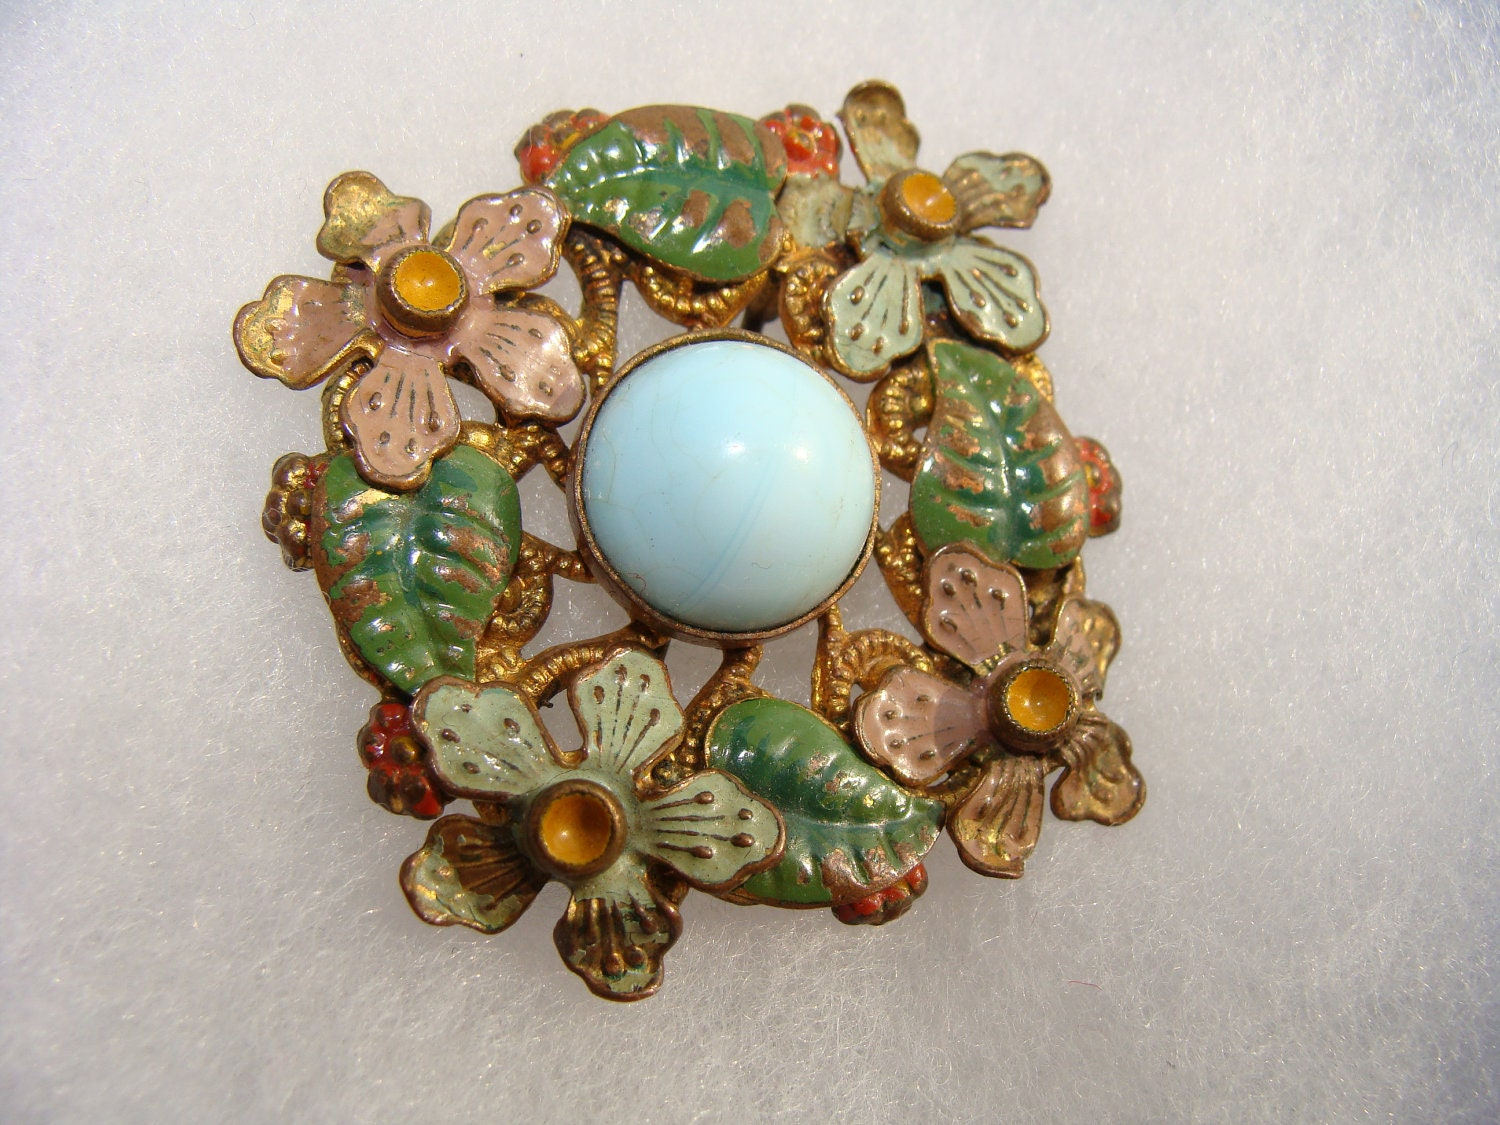 Vintage 1920s 1930s enamel and glass flower brooch